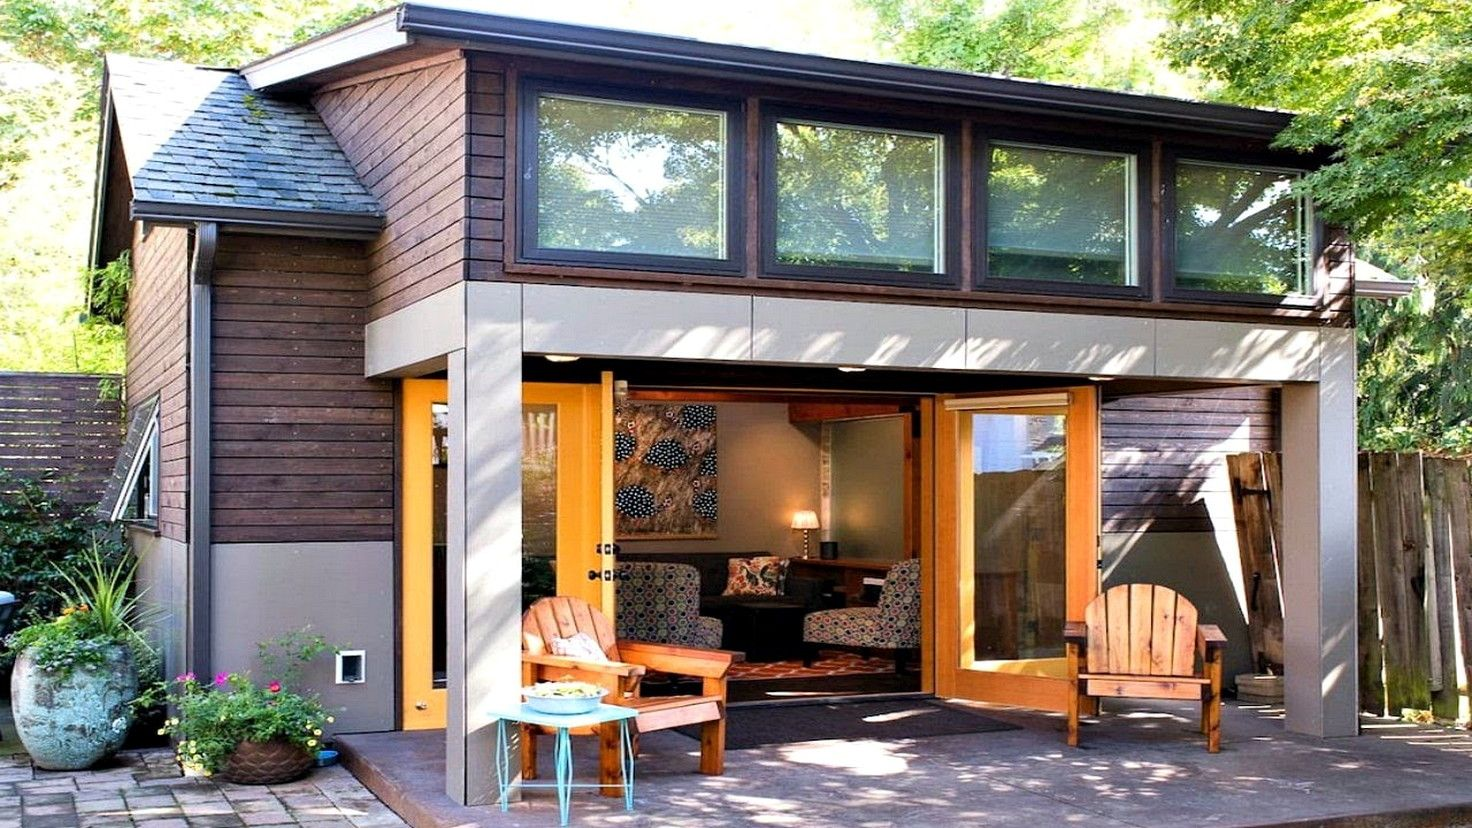 Design your dream house tiny big living villa also awesome wood ideas houses rh pinterest